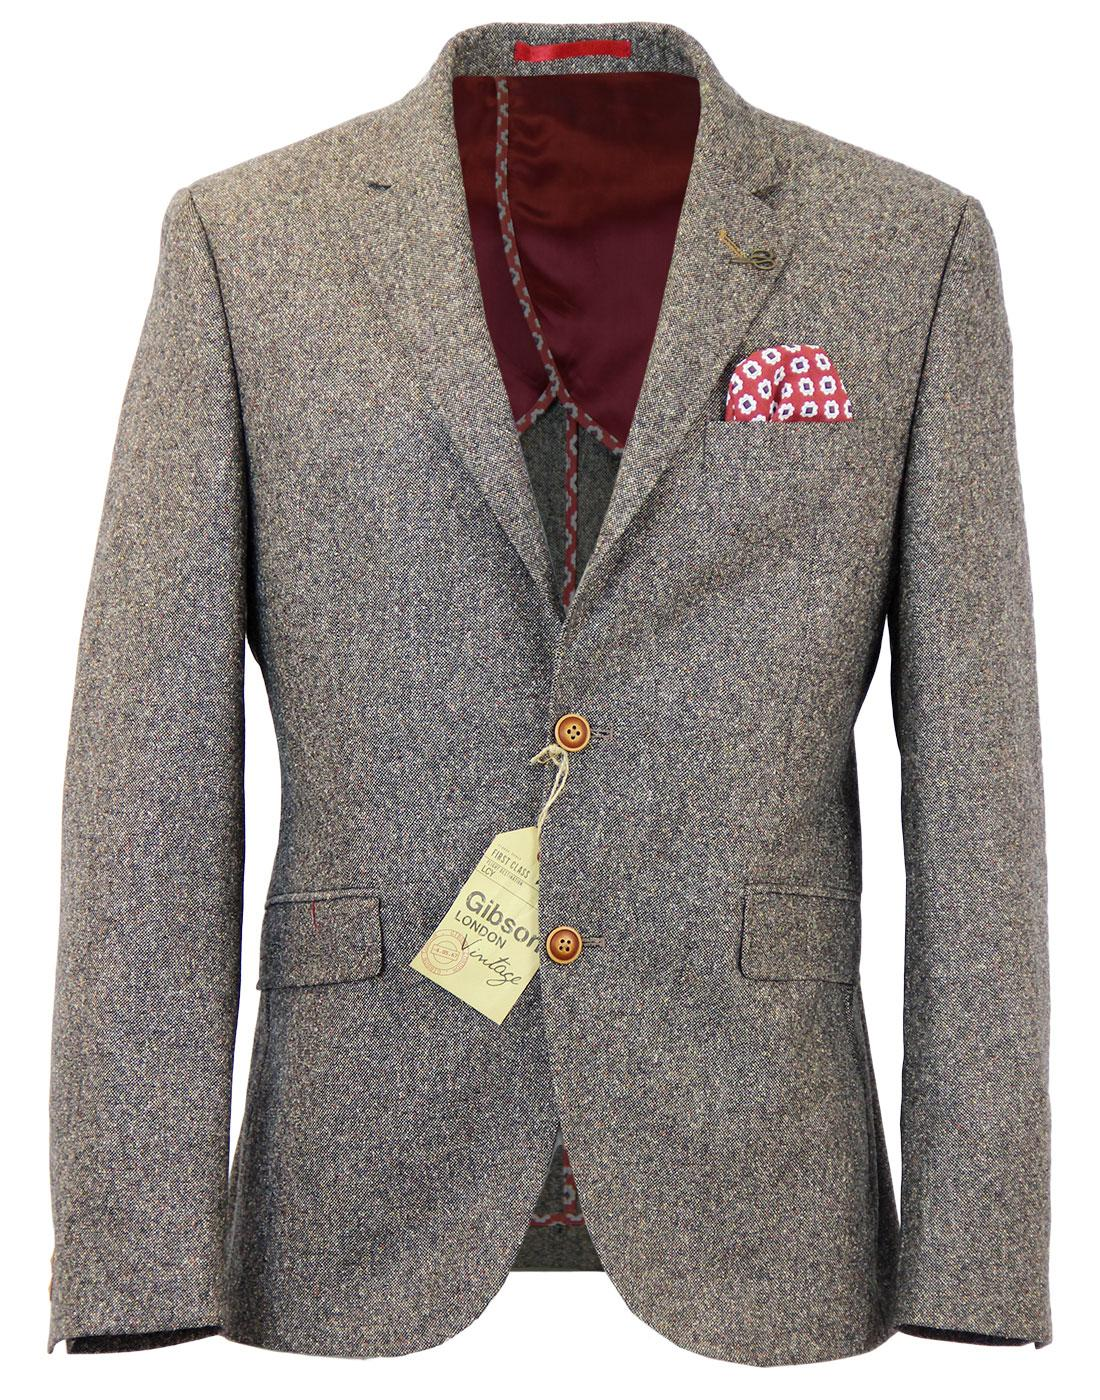 GIBSON LONDON 2 Button Donegal Suit Jacket TAUPE